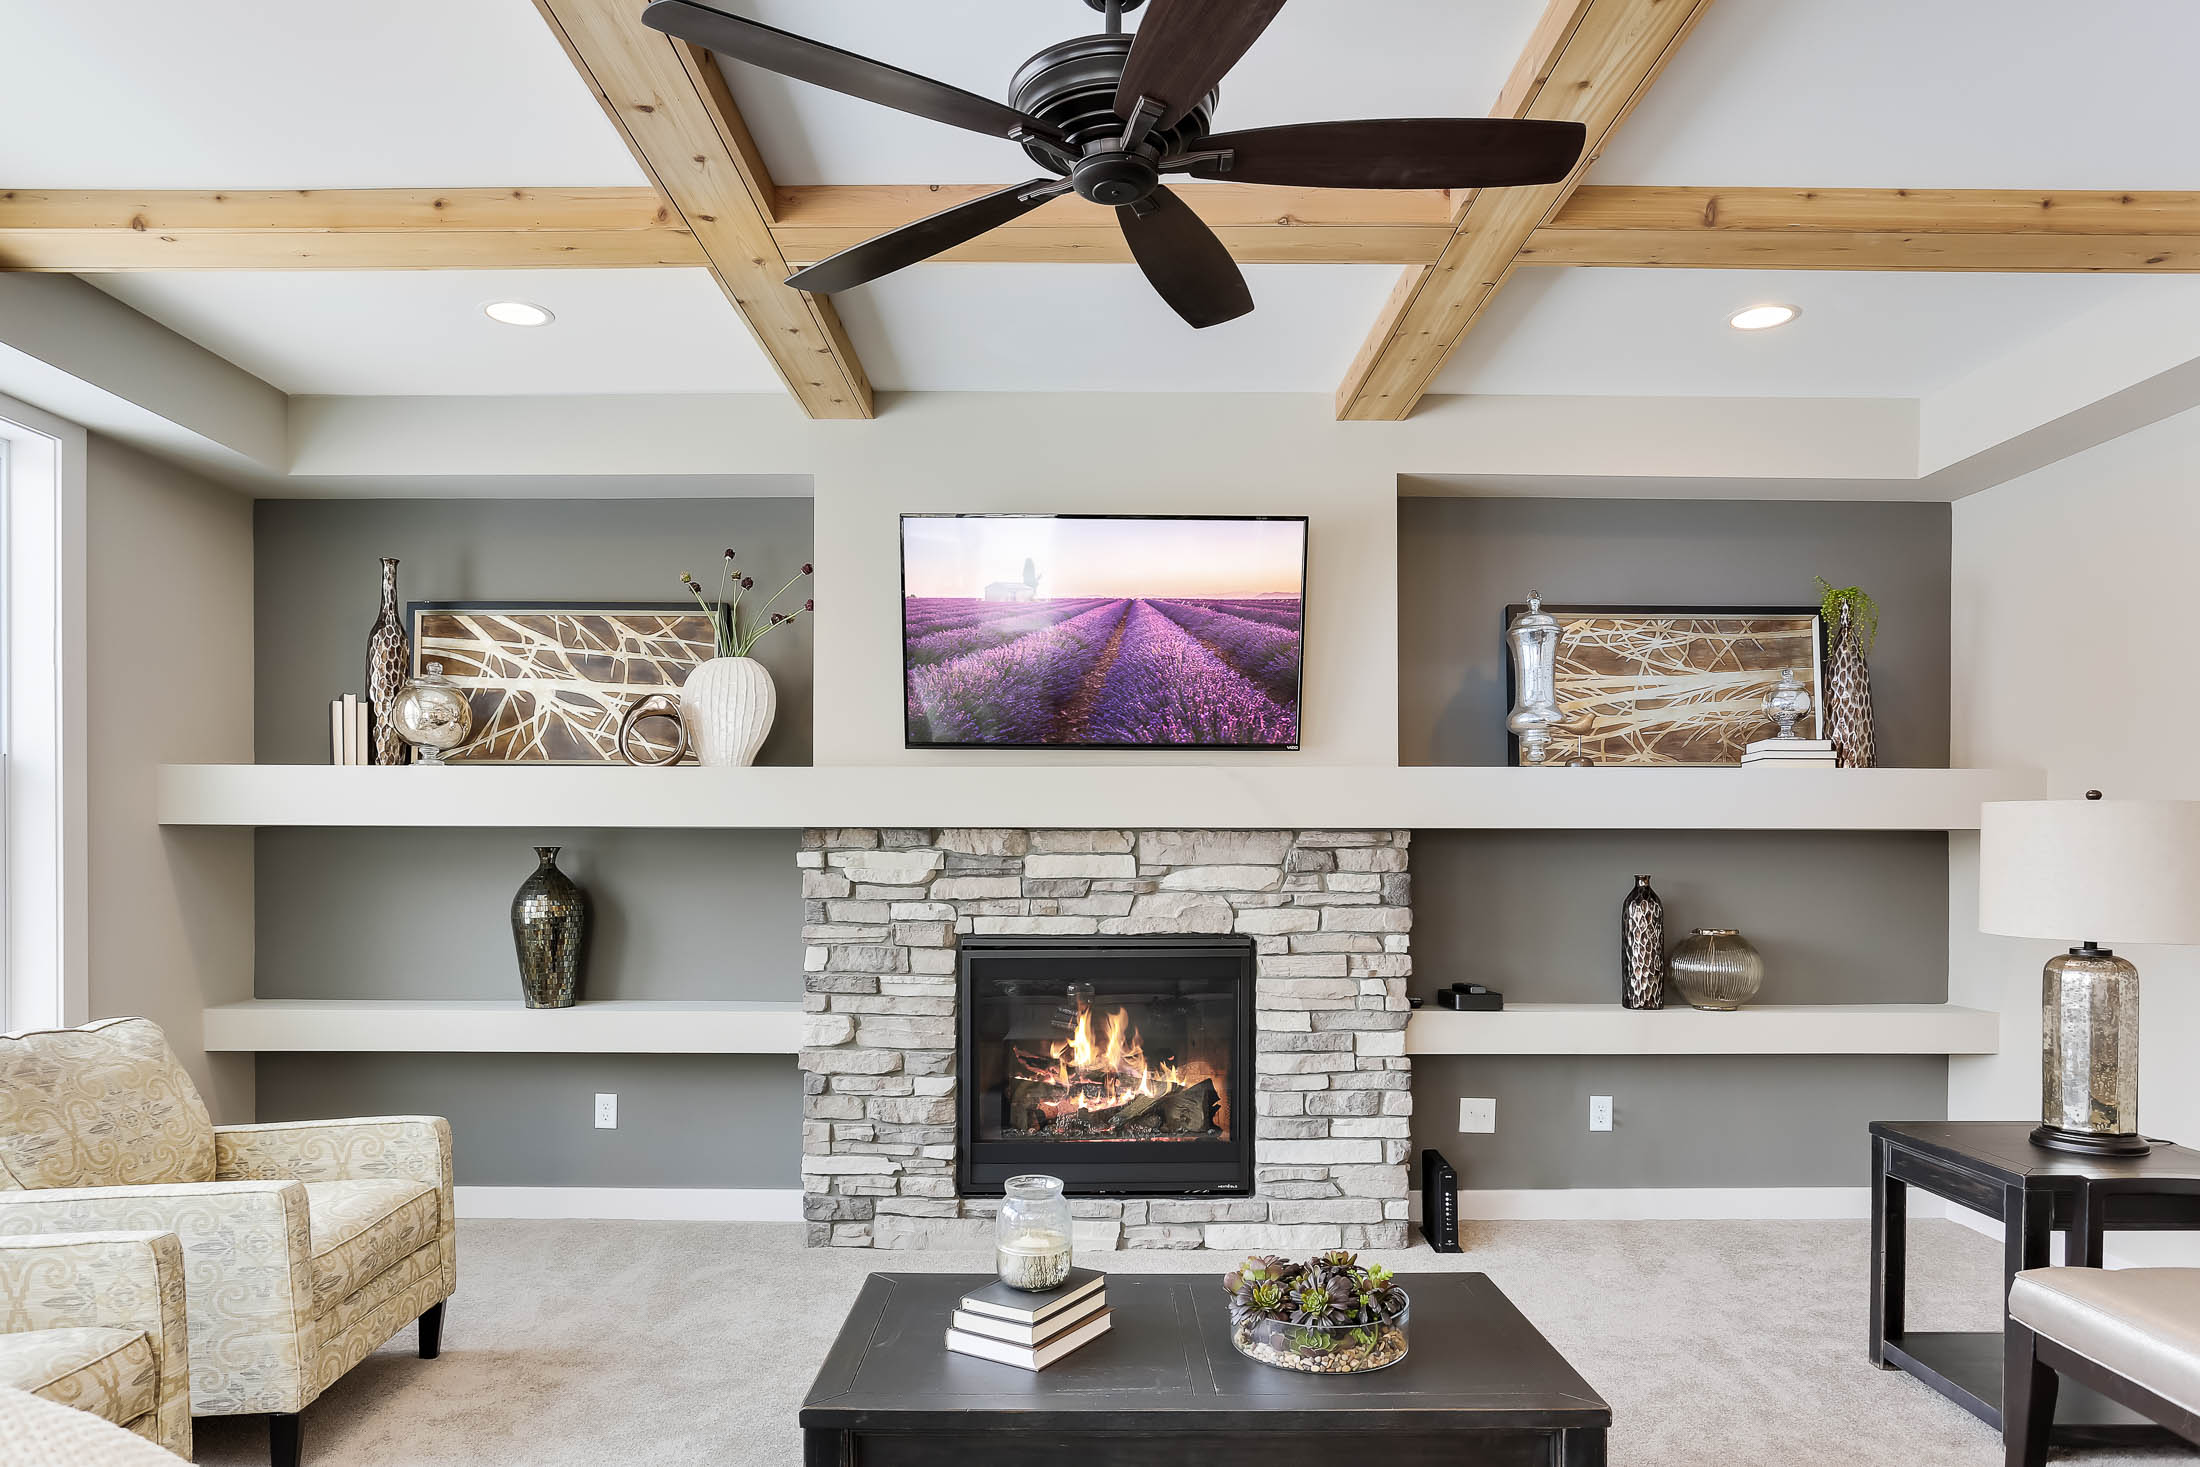 Media wall with fireplace and niches